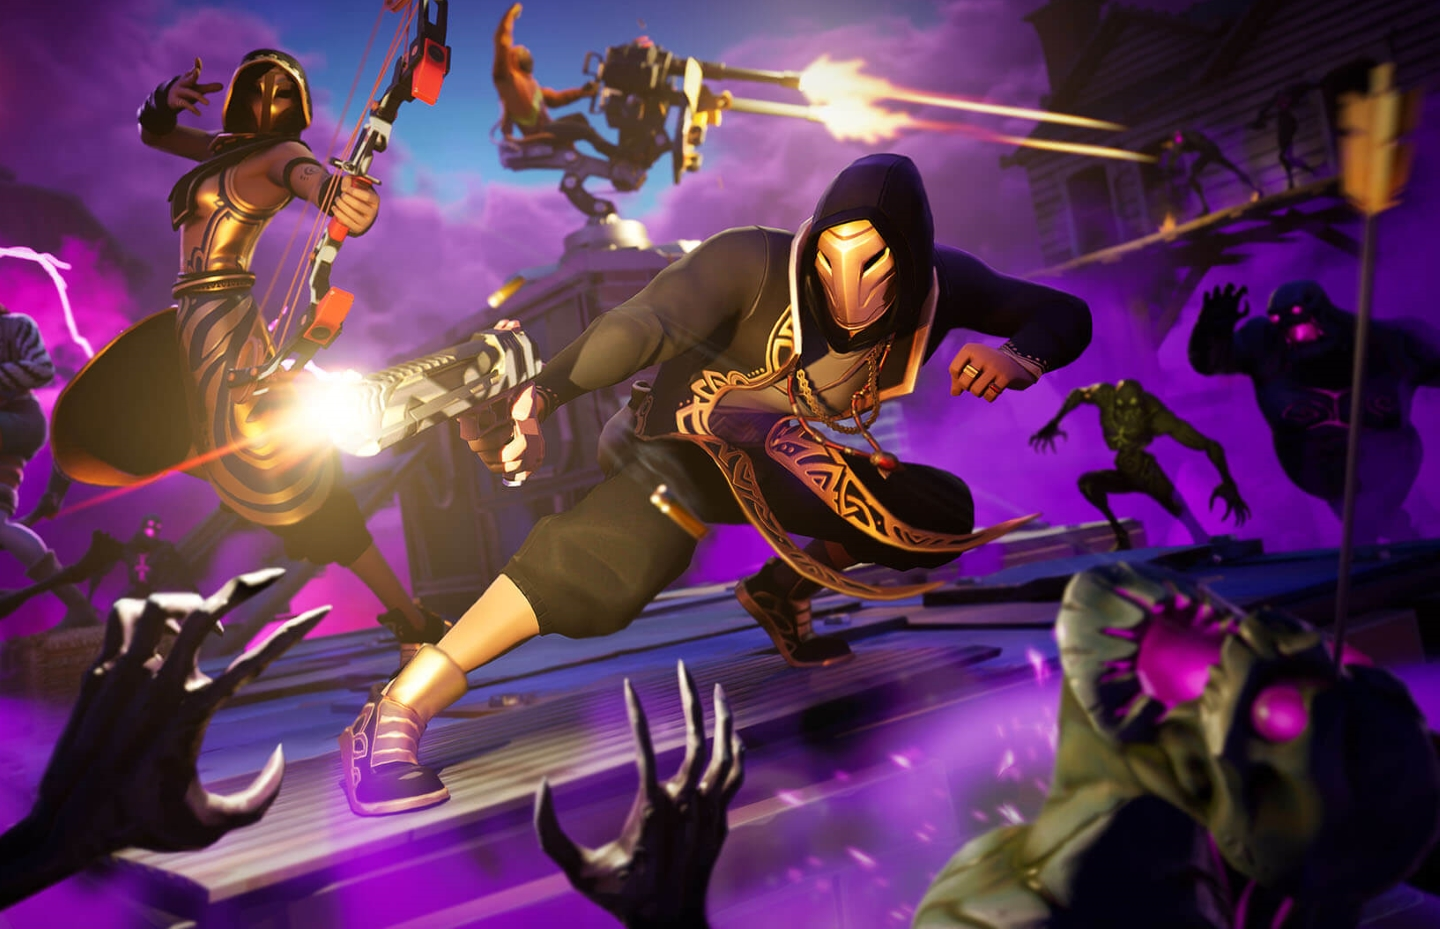 Fortnite-patch-v9.21-adds-the-Proximity-Grenade-Launcher-and-Horde-Rush-mode